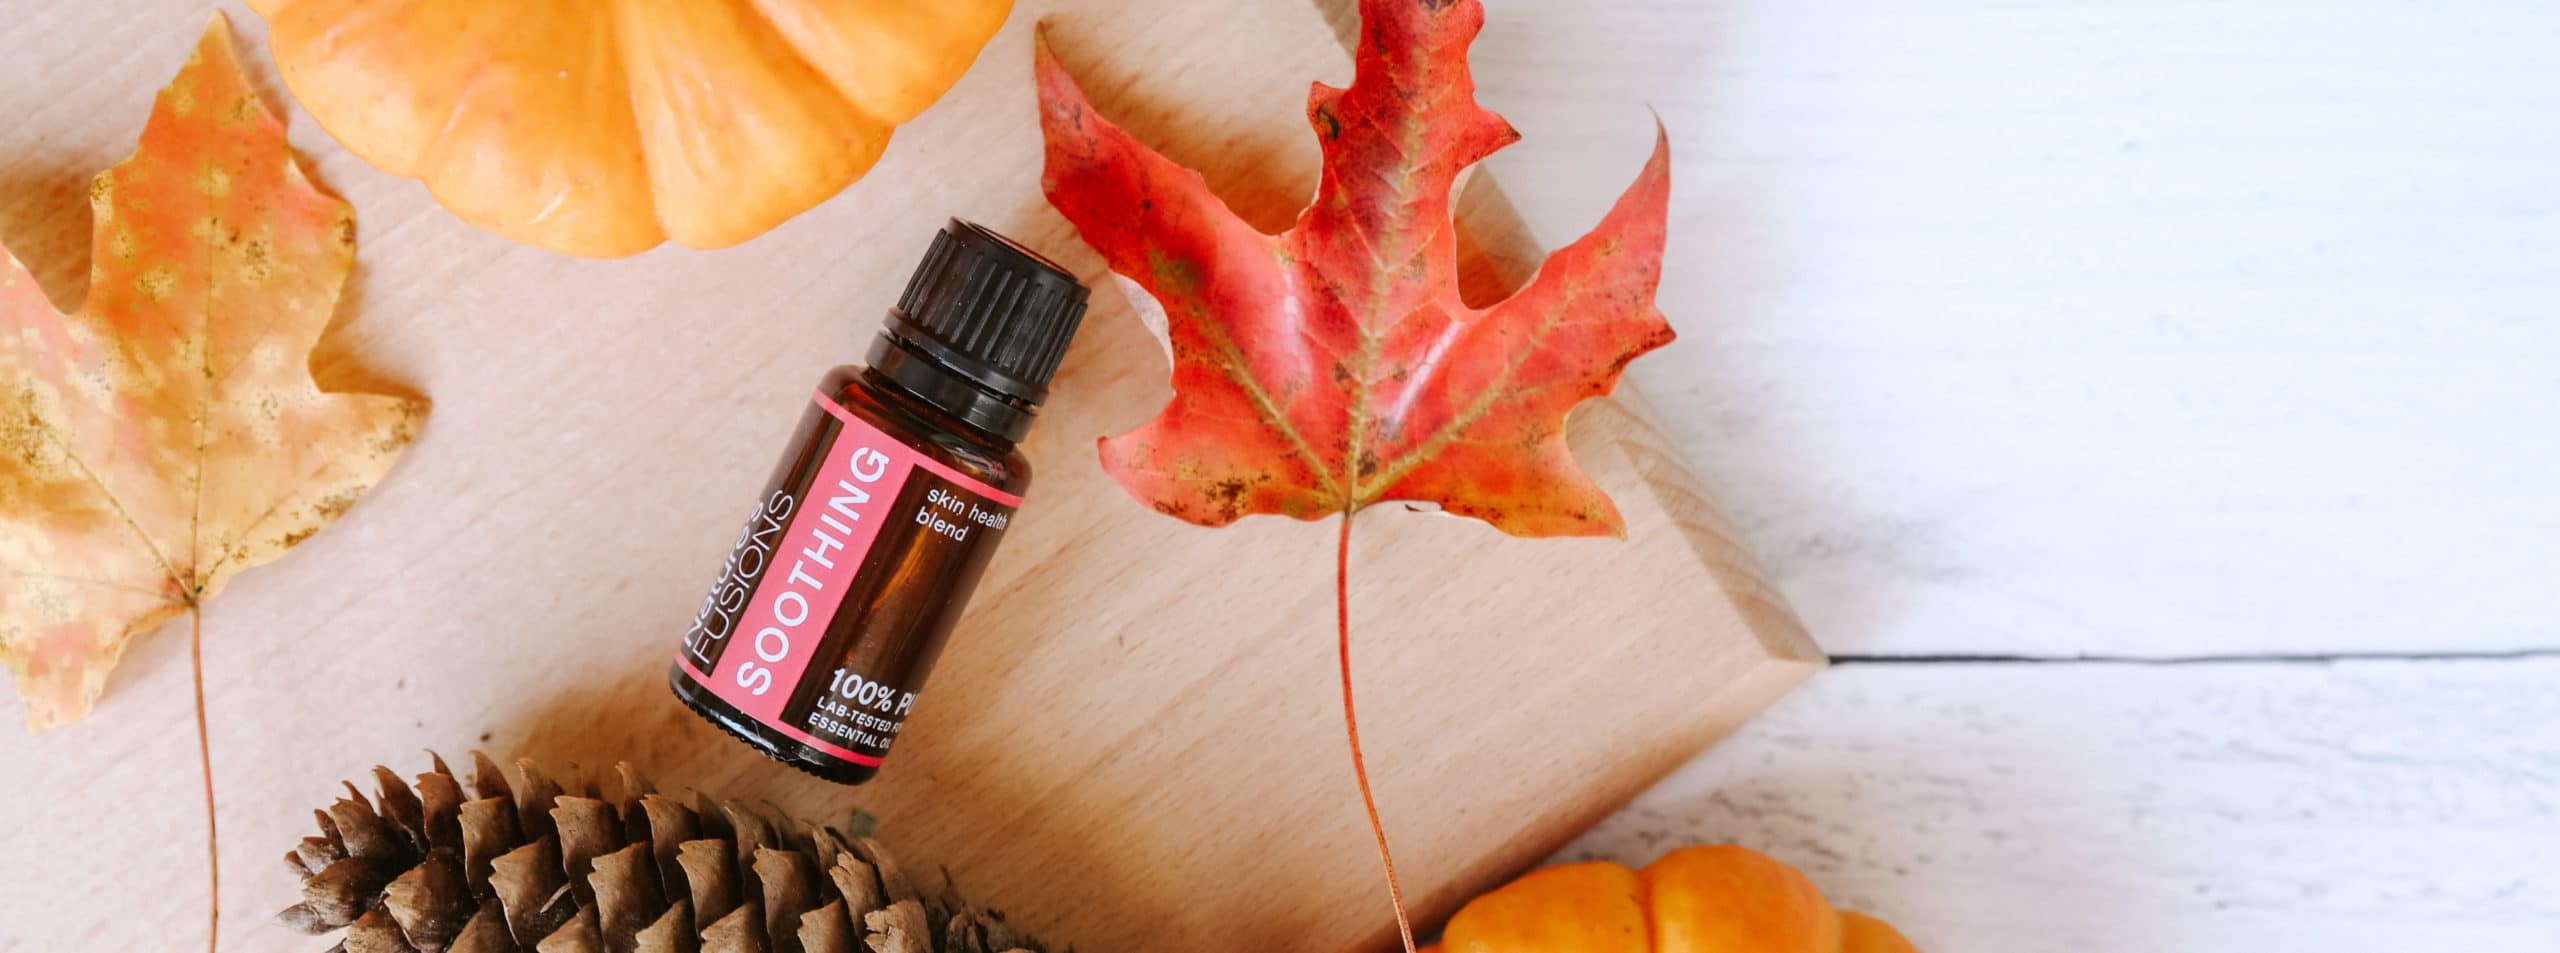 bottle of Soothing blend with fall decorations